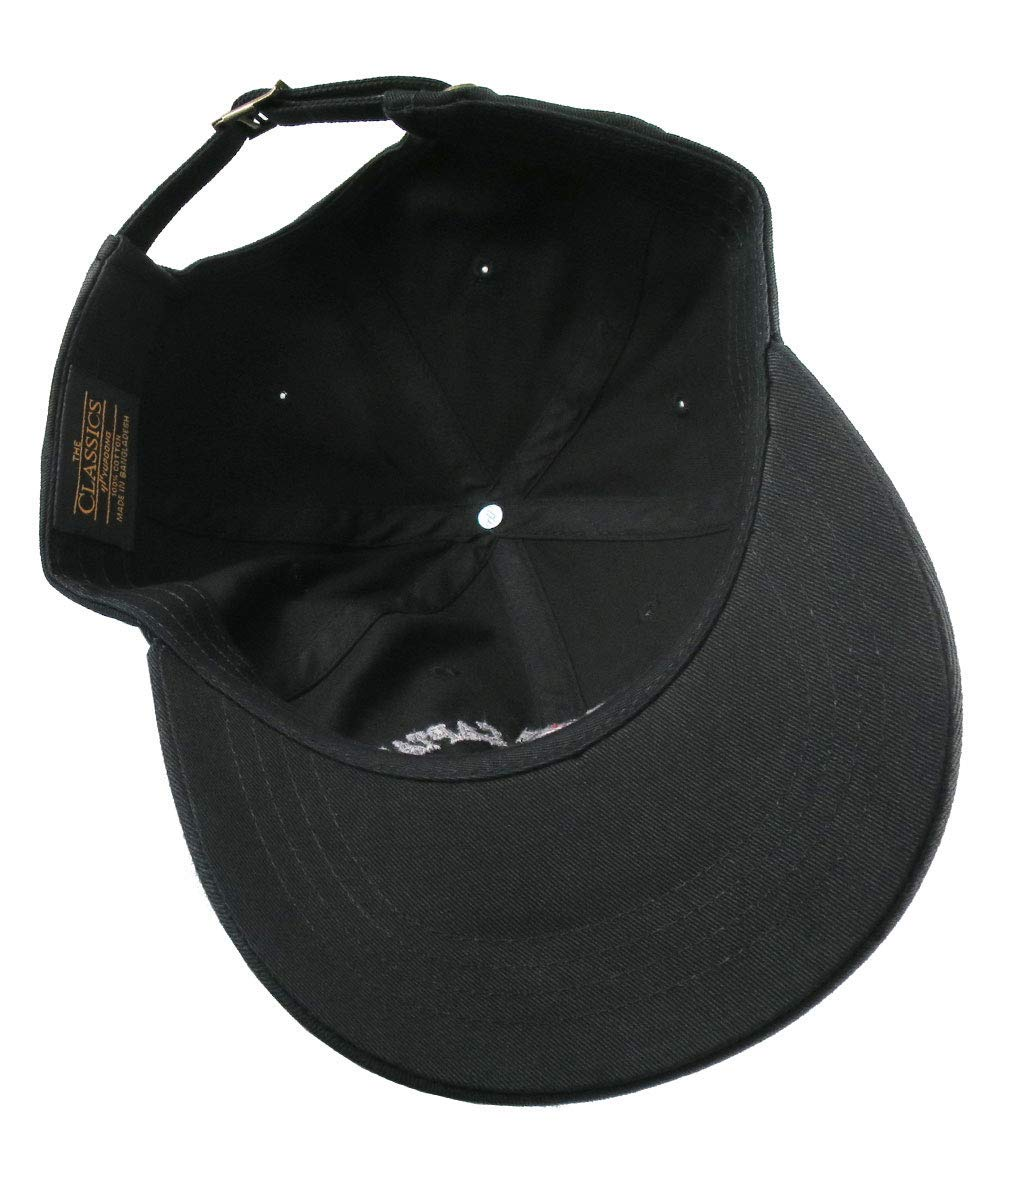 Work Like A Captain Play Like A Pirate Embroidery on an Adjustable Black Unstructured Baseball Cap Dad Hat Option to Personalize the Back